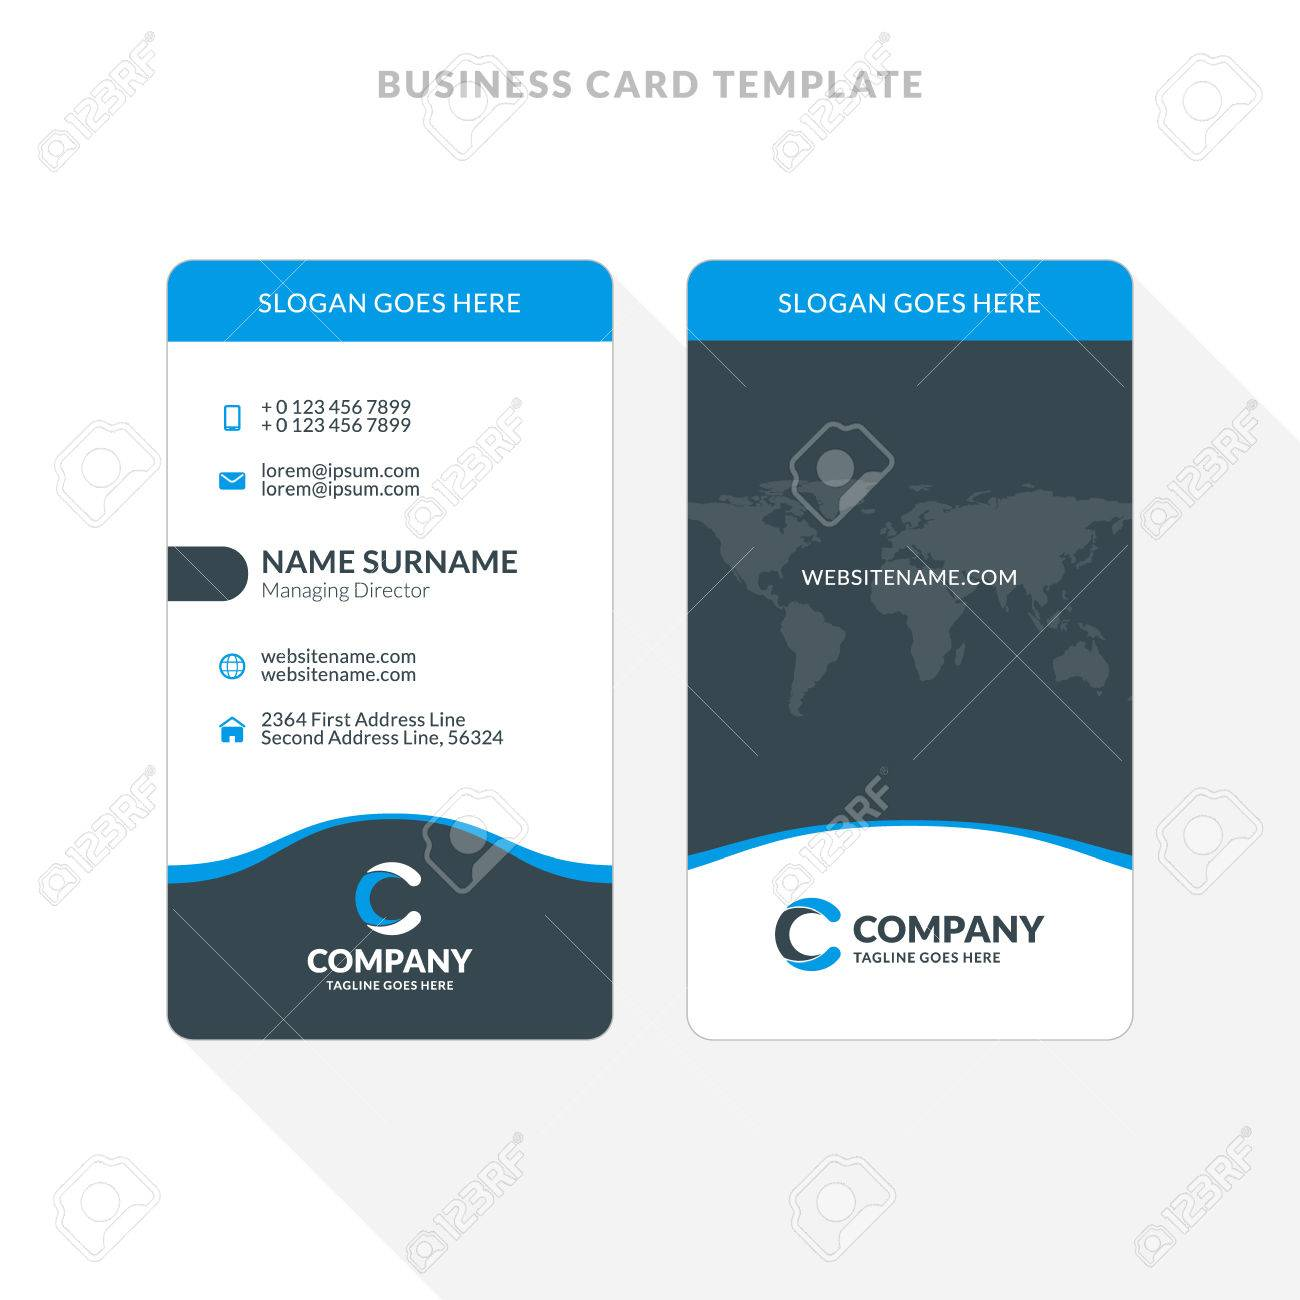 Two Sided Business Card Template Word - mandegar.info